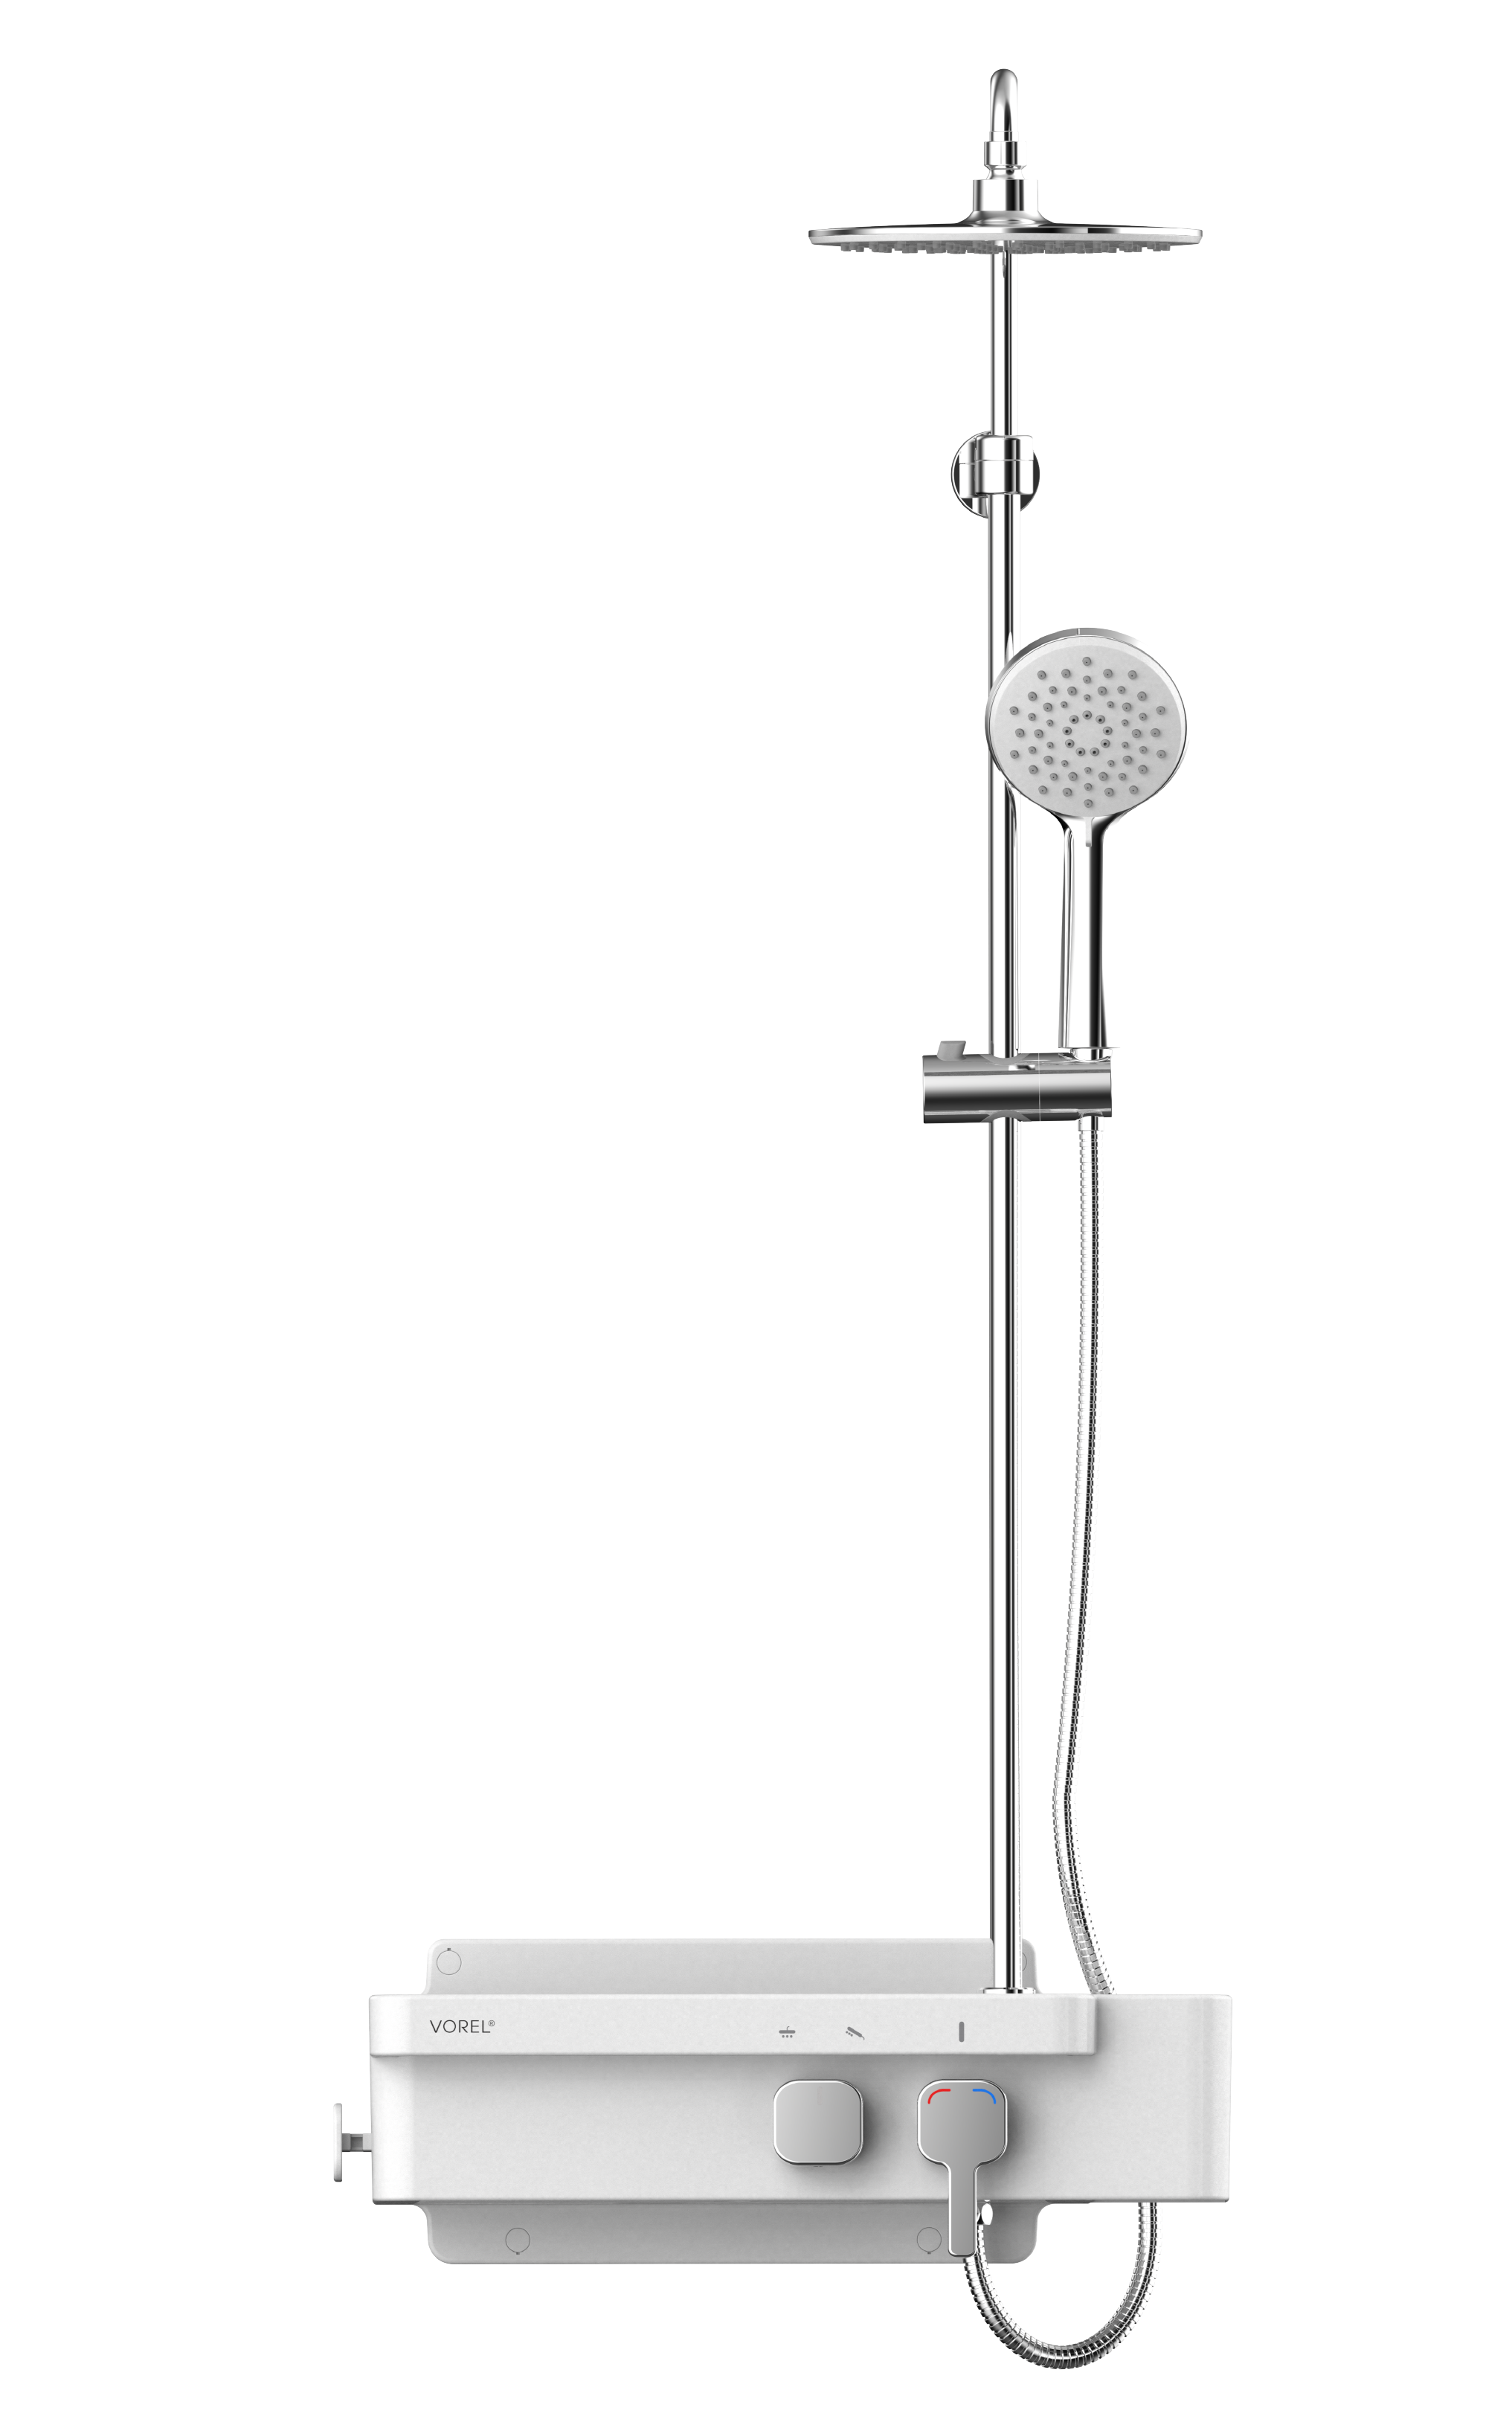 EH-2000 - Smart Shower